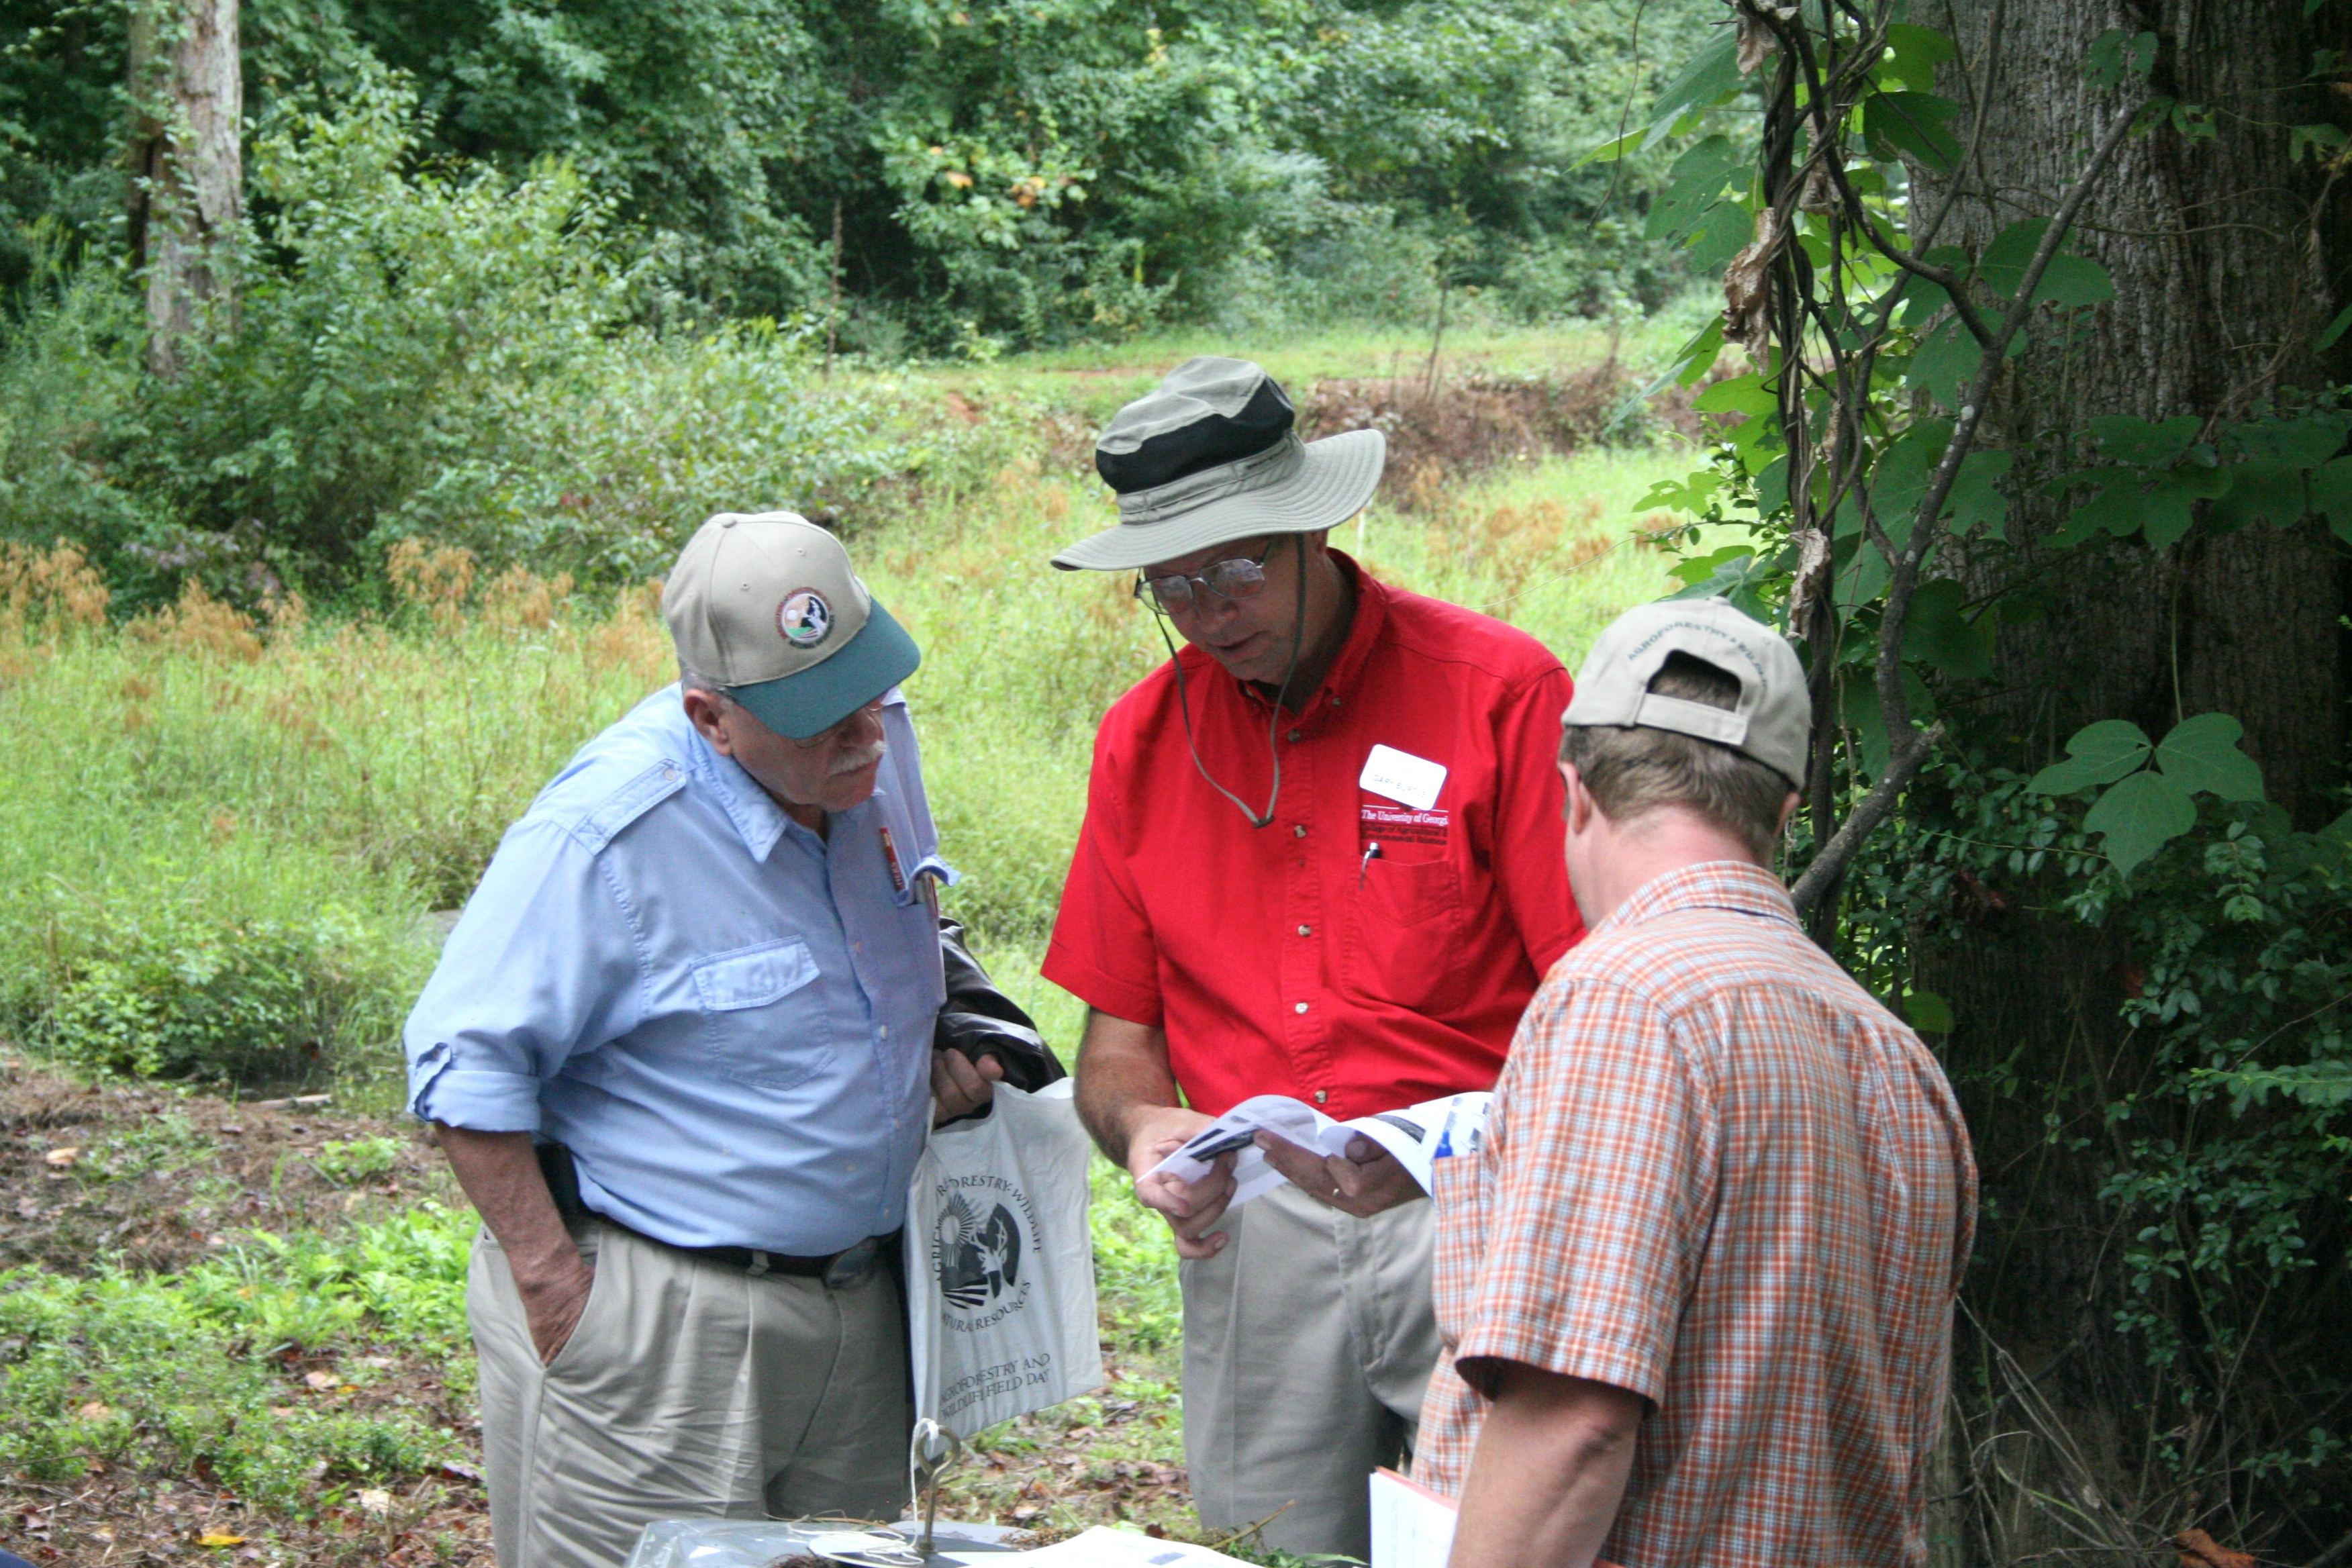 UGA Extension fisheries specialist Gary Burtle discusses pond management with two participants at the 2009 Agroforestry and Wildlife Field Day.